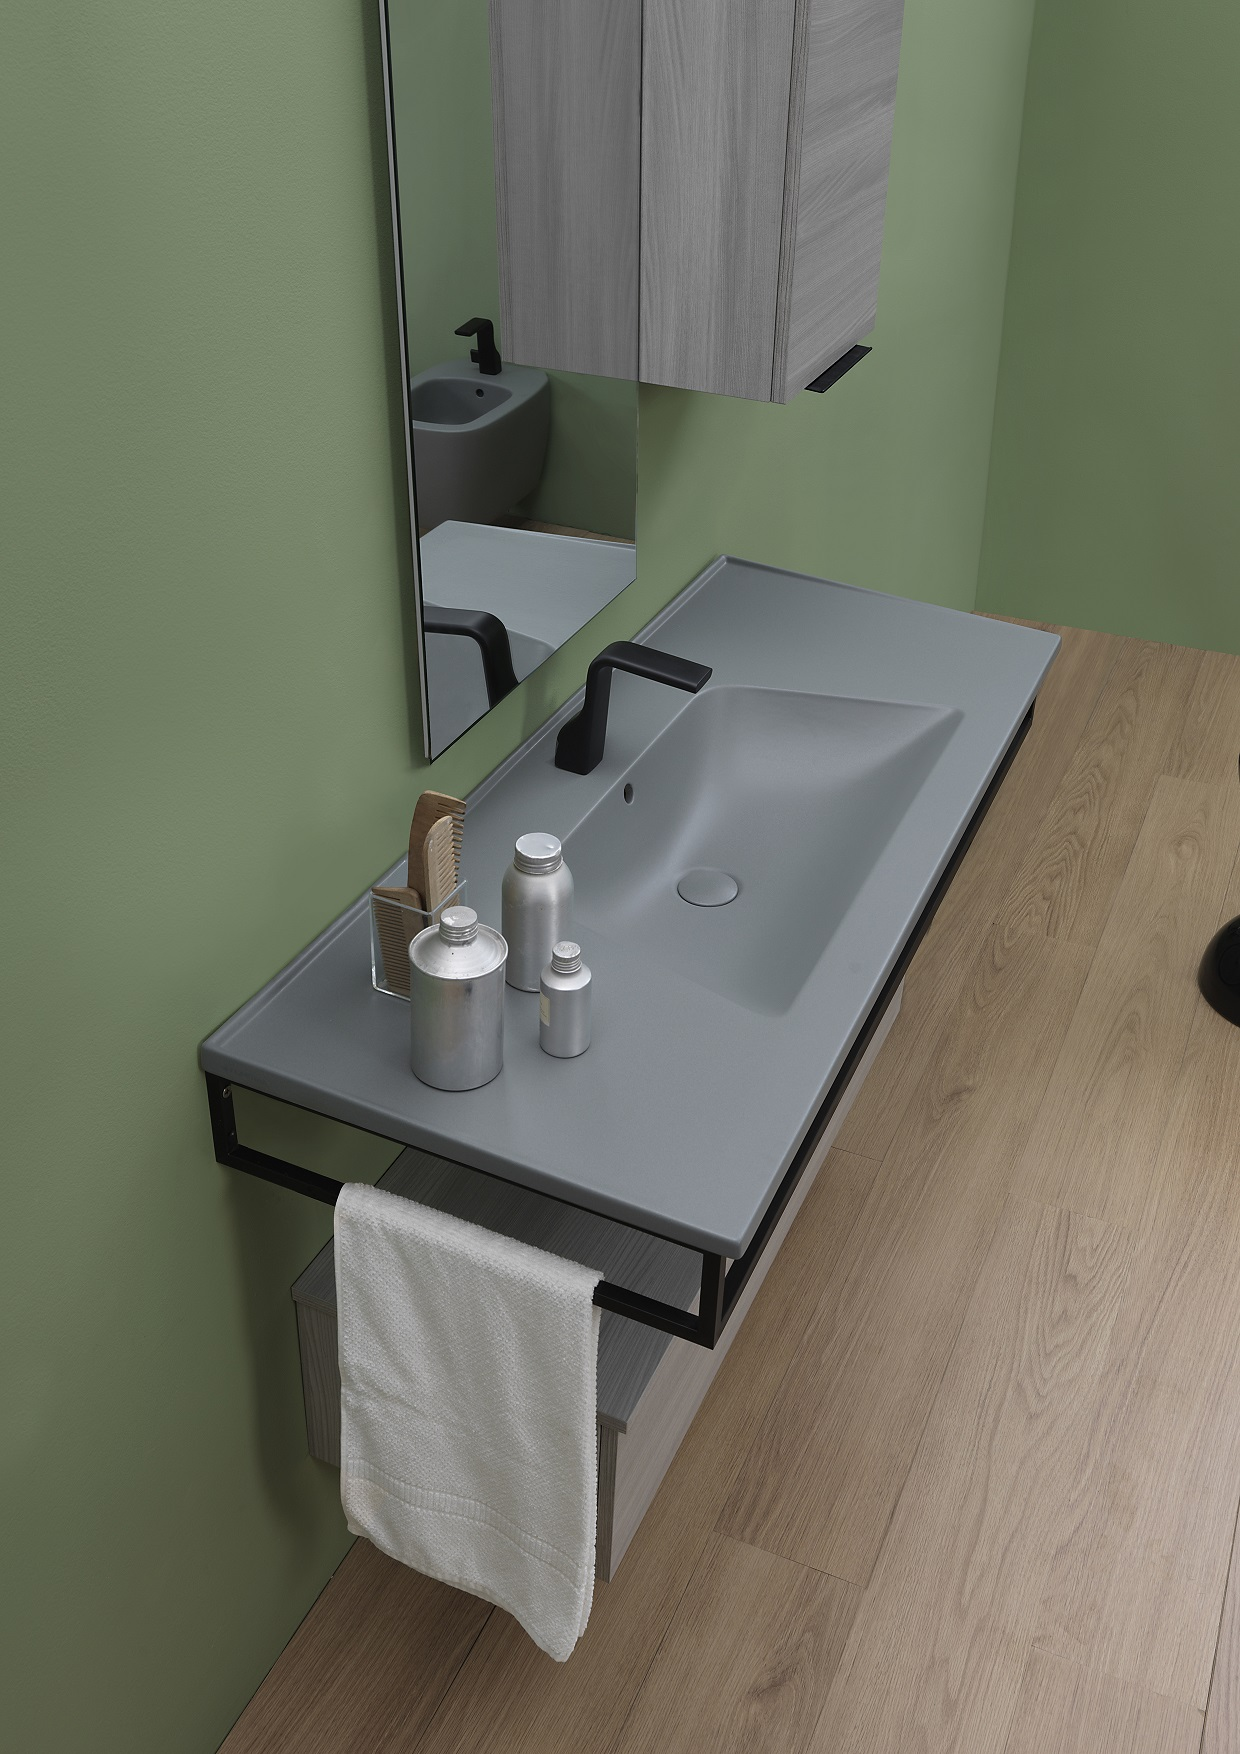 FLAMINIA product images